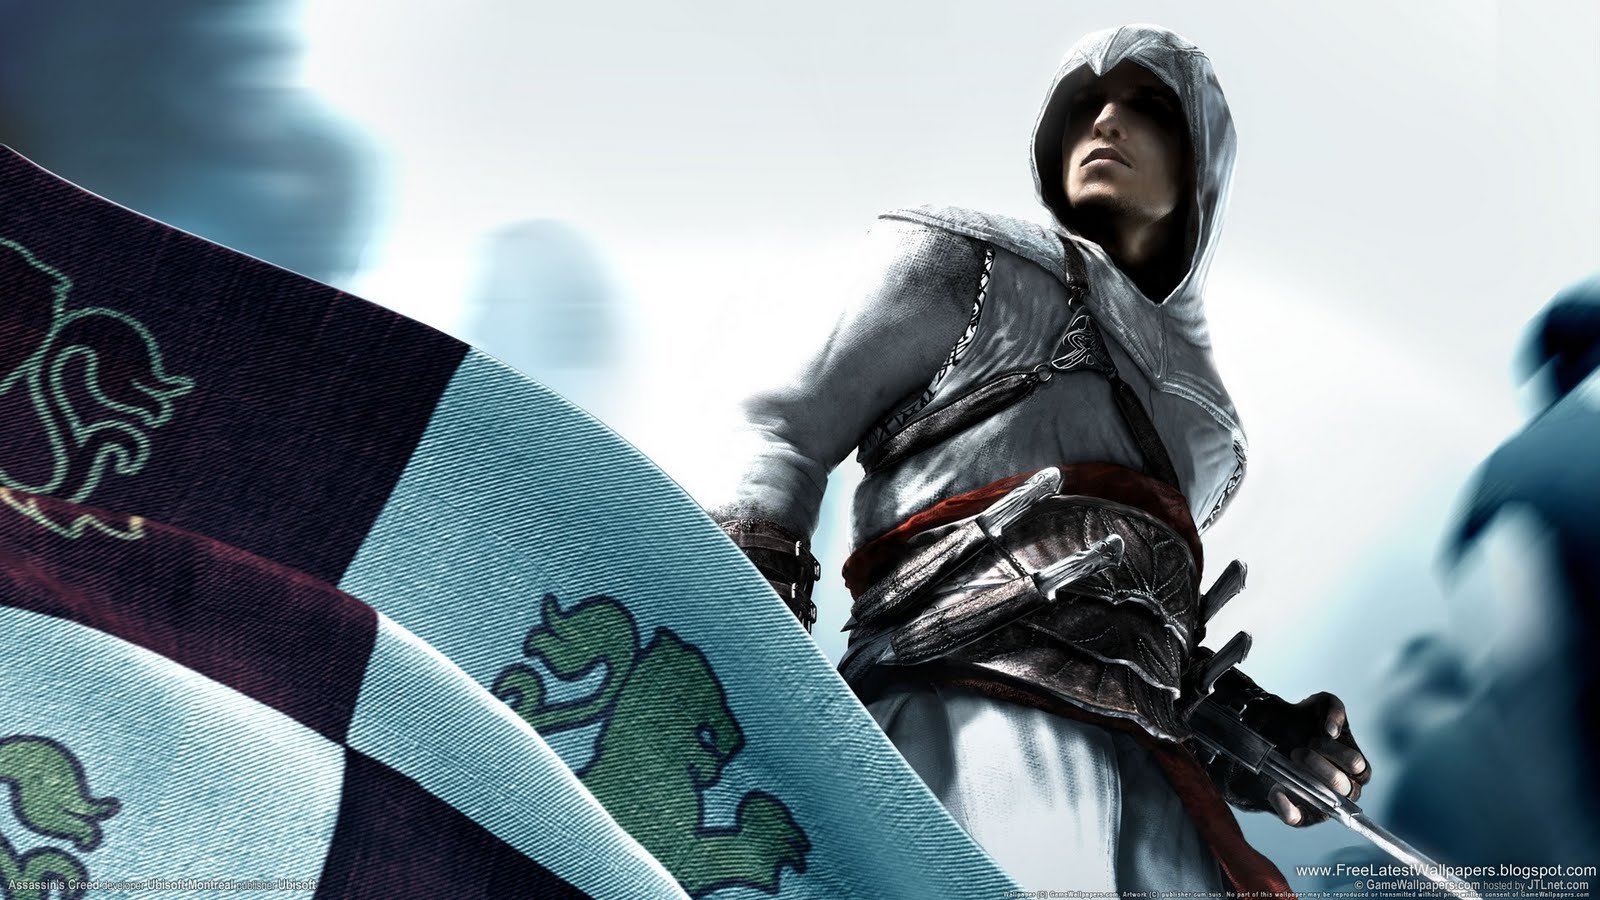 Assassins creed games free online - Assassins Creed Hd Wallpapers Free Games Wallpaper